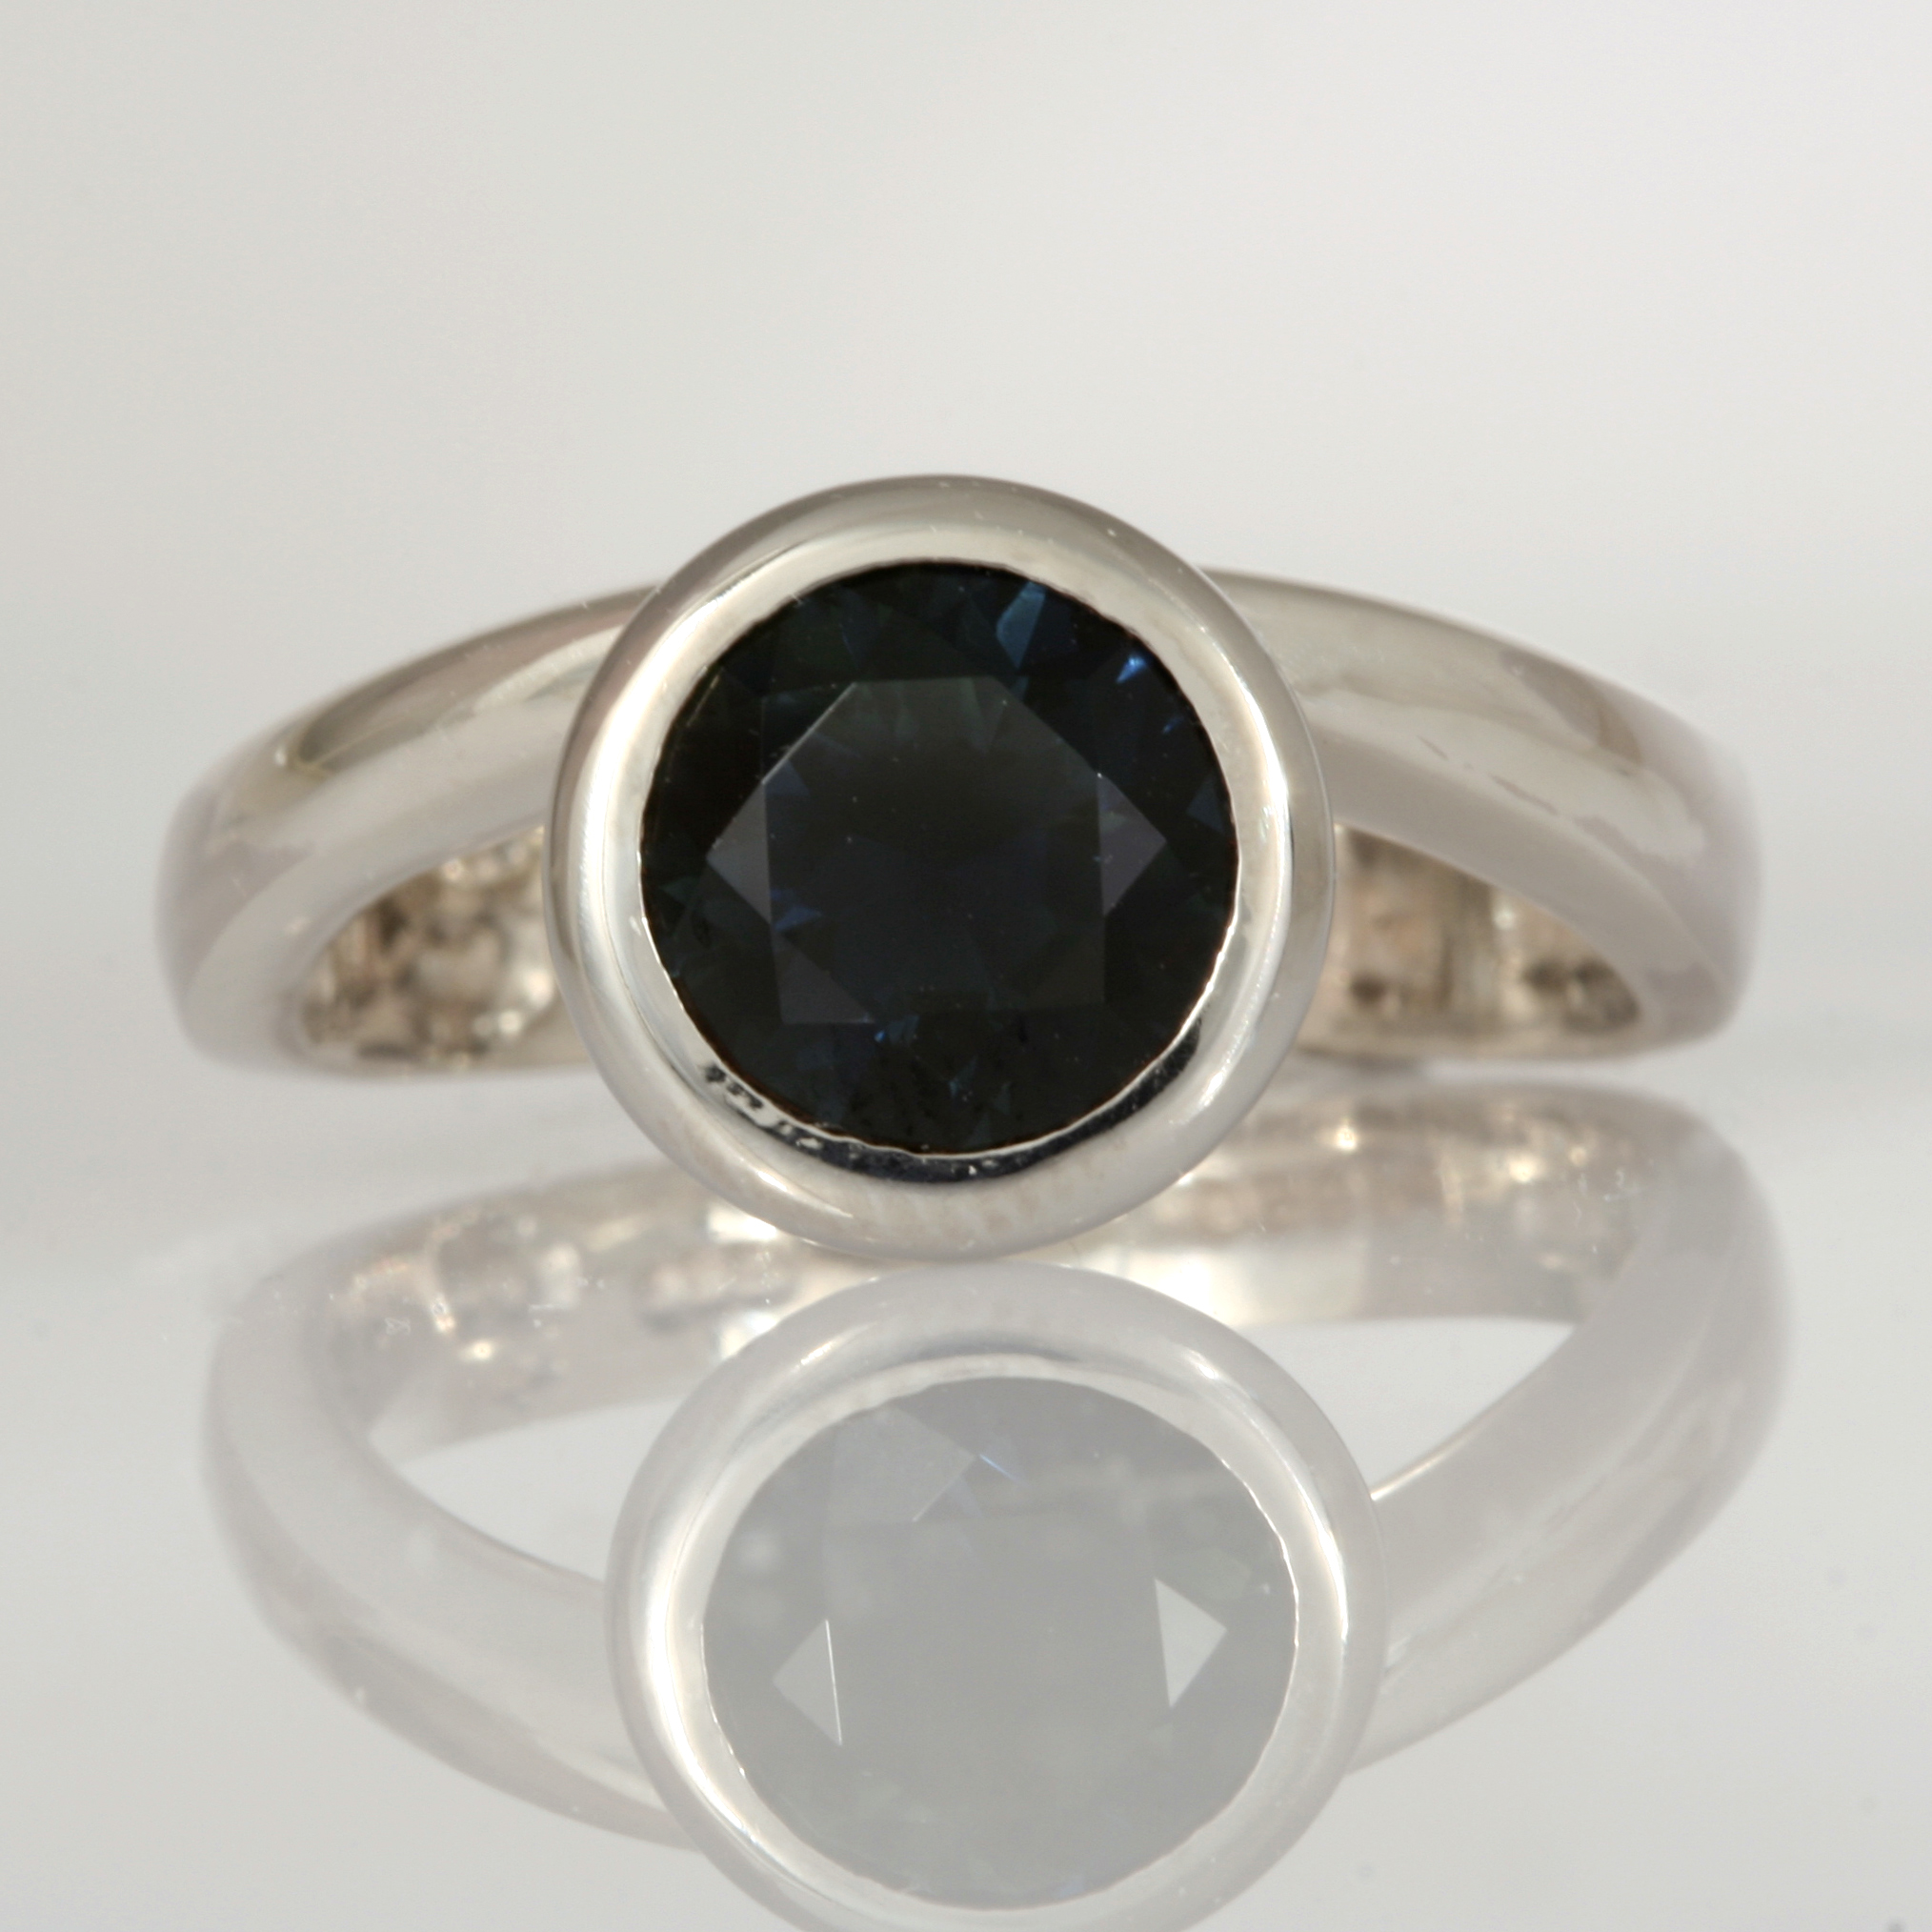 Handmade ladies sterling silver, palladium and 9ct white gold sapphire ring